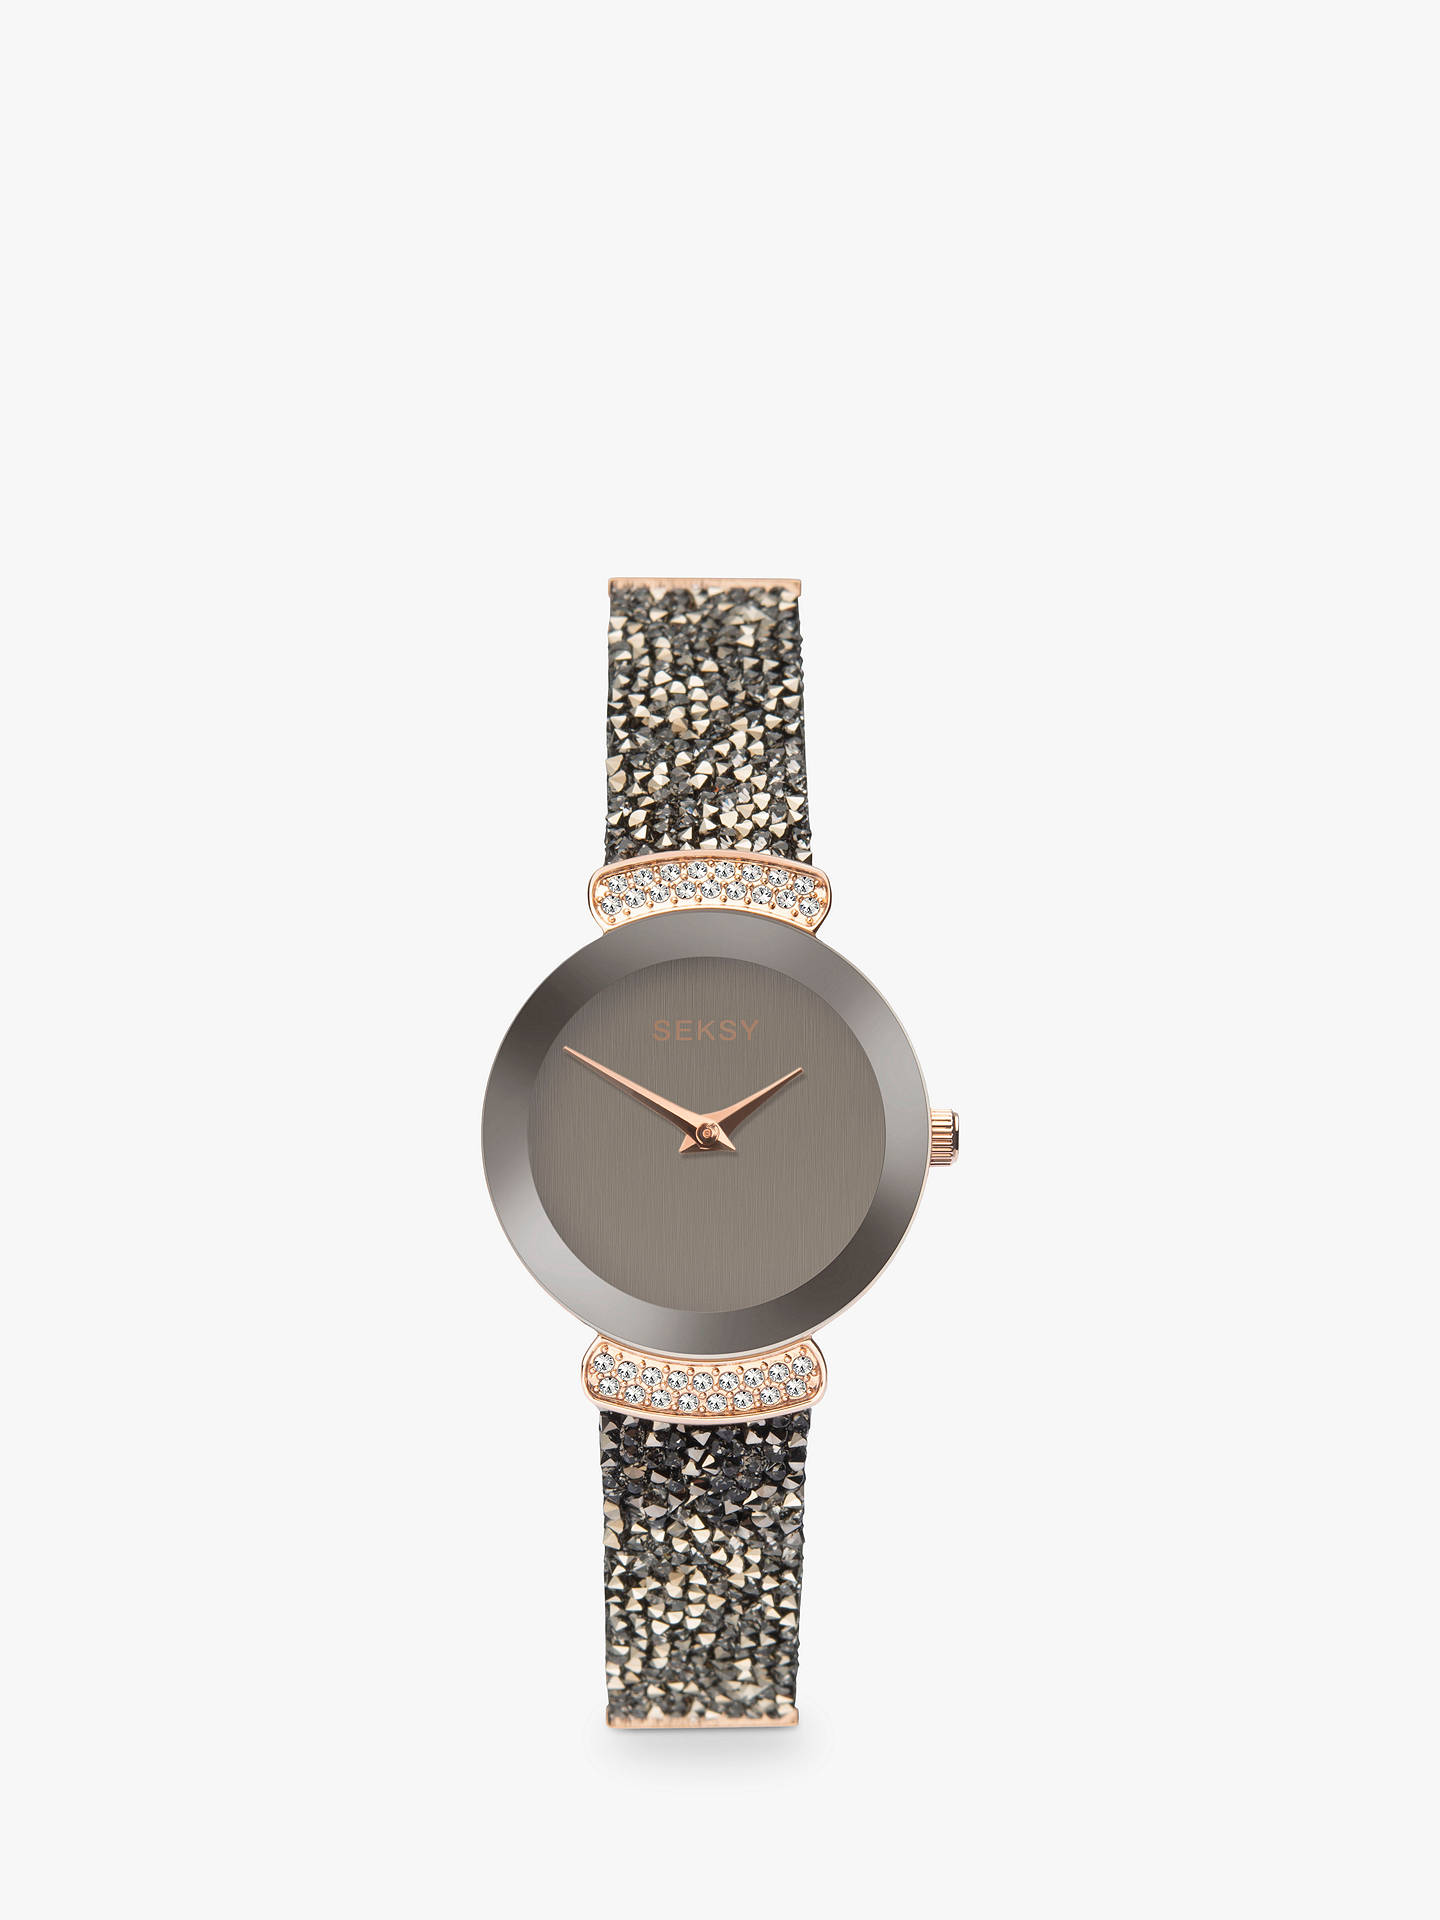 BuySekonda Women's Seksy Swarovski and Rock Crystal Leather Strap Watch, Black/Grey 2719.37 Online at johnlewis.com